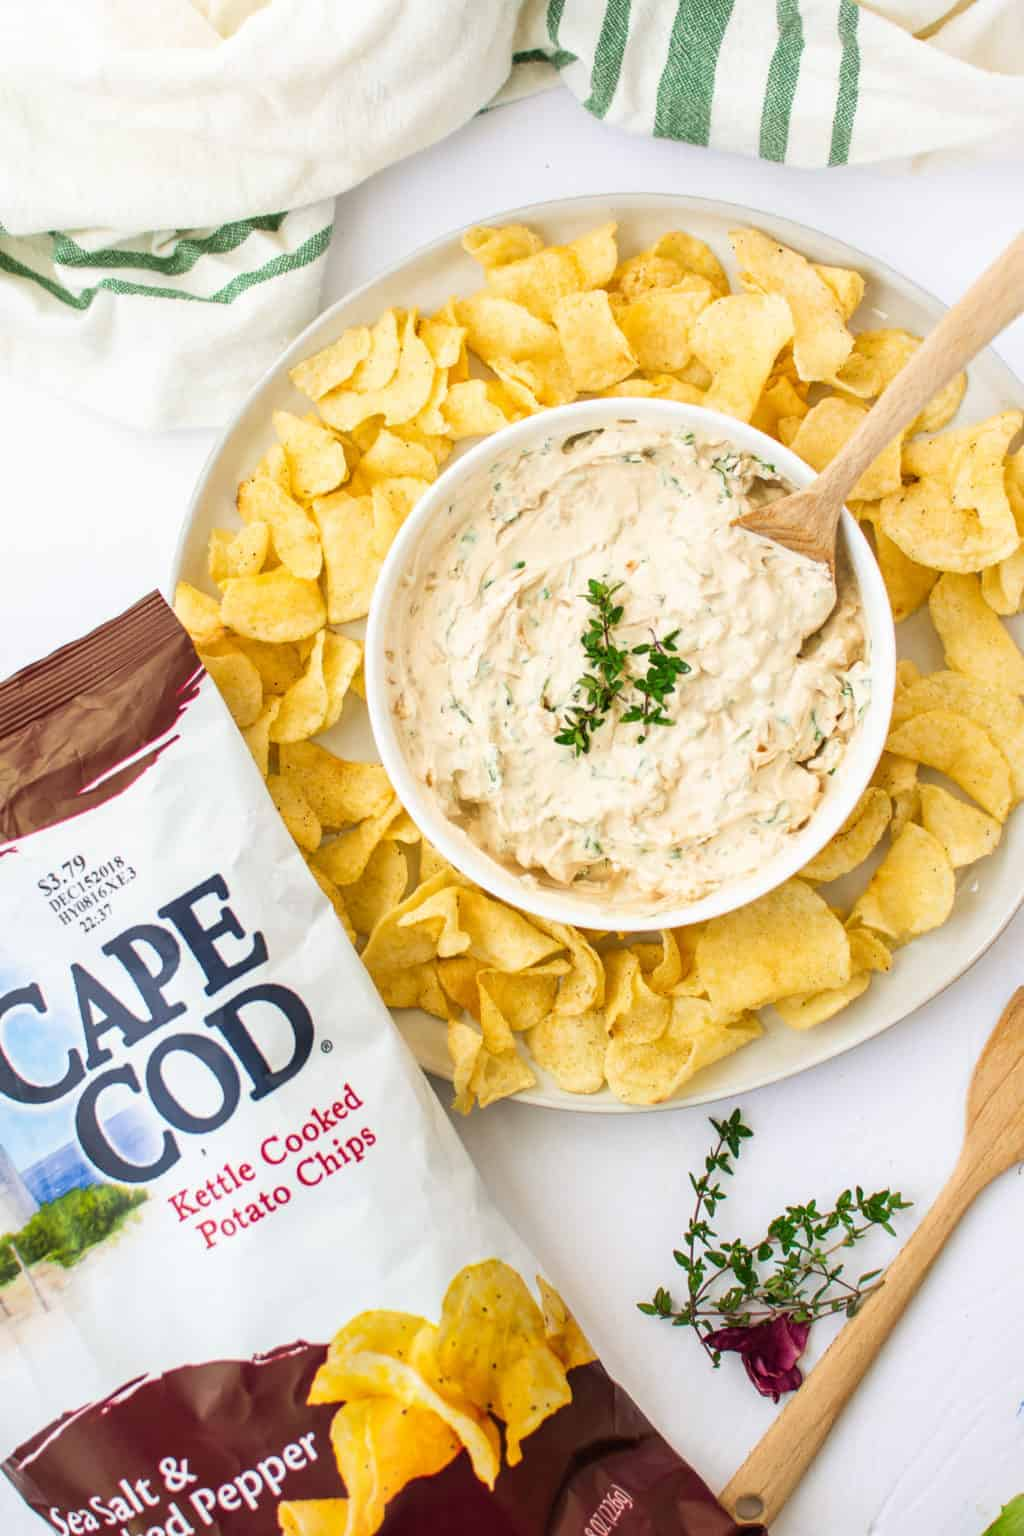 High in protein, gluten free, and only 2 ingredients, this Easy + Healthy French Onion Dip is the perfect appetizer. || The Butter Half #appetizerrecipes #easyappetizer #frenchoniondip